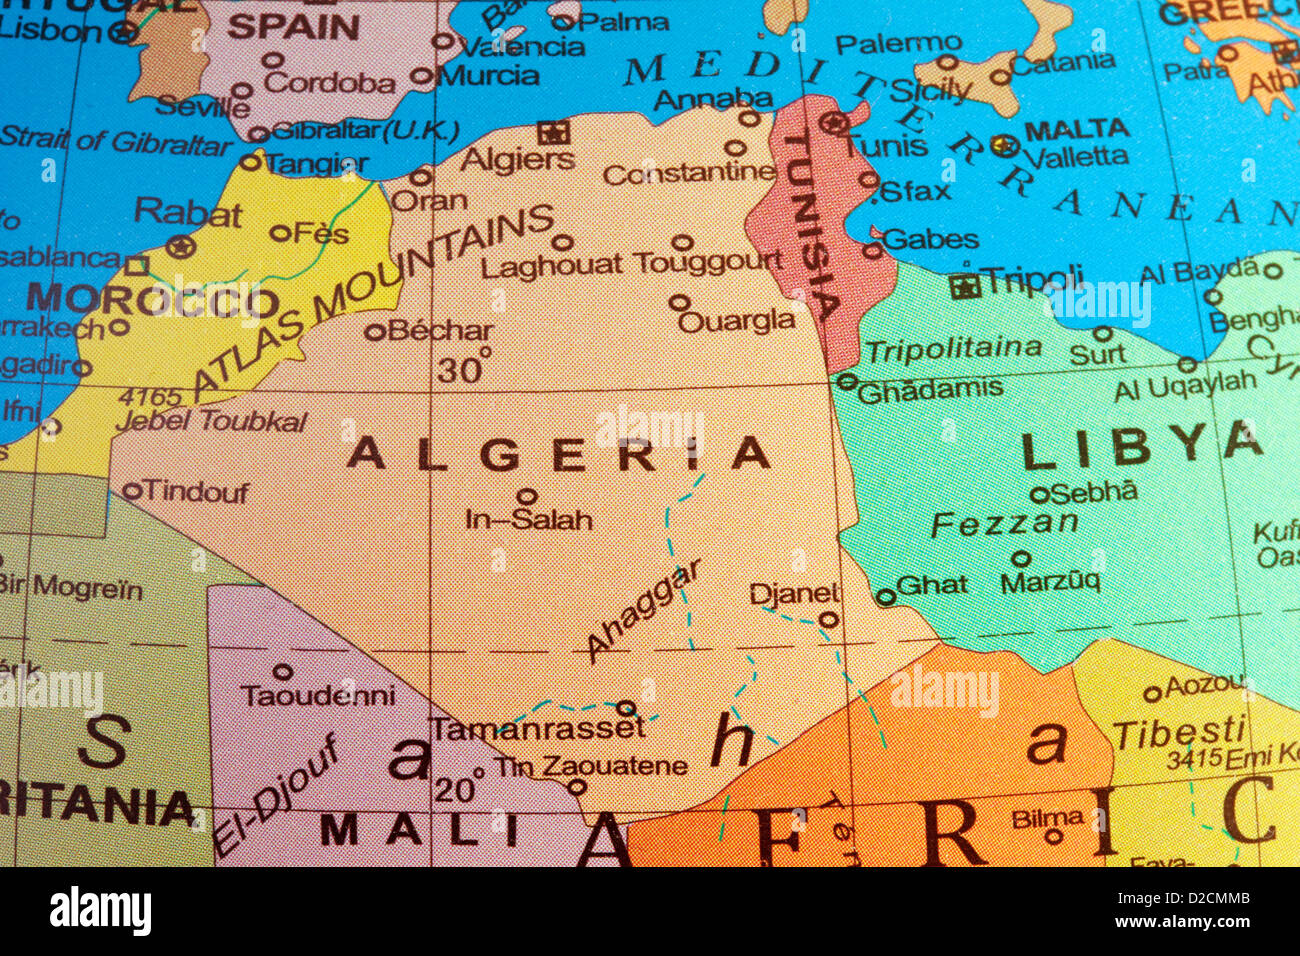 A map of Algeria and north Africa on a globe Stock Photo 53140091